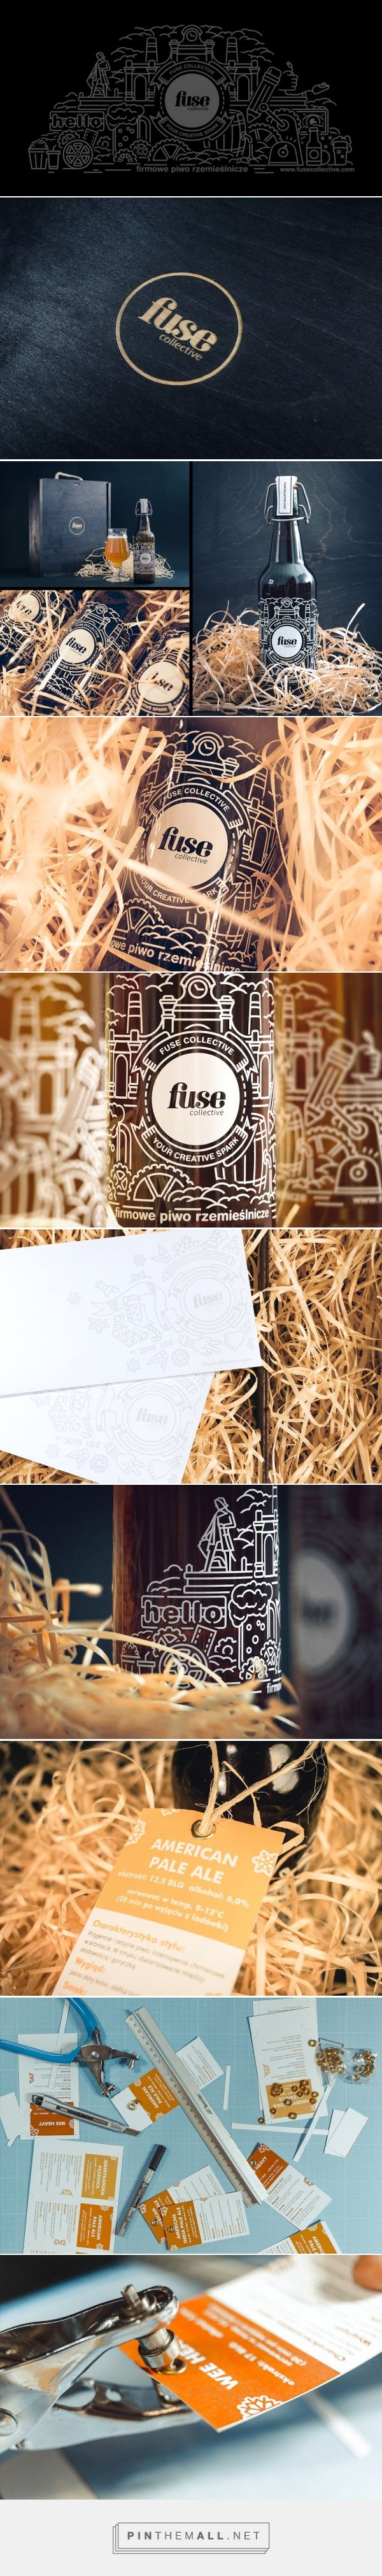 Fuse Collective Craft Beer Gift (Poland) - http://www.packagingoftheworld.com/2016/03/craft-beer-christmas-gift.html